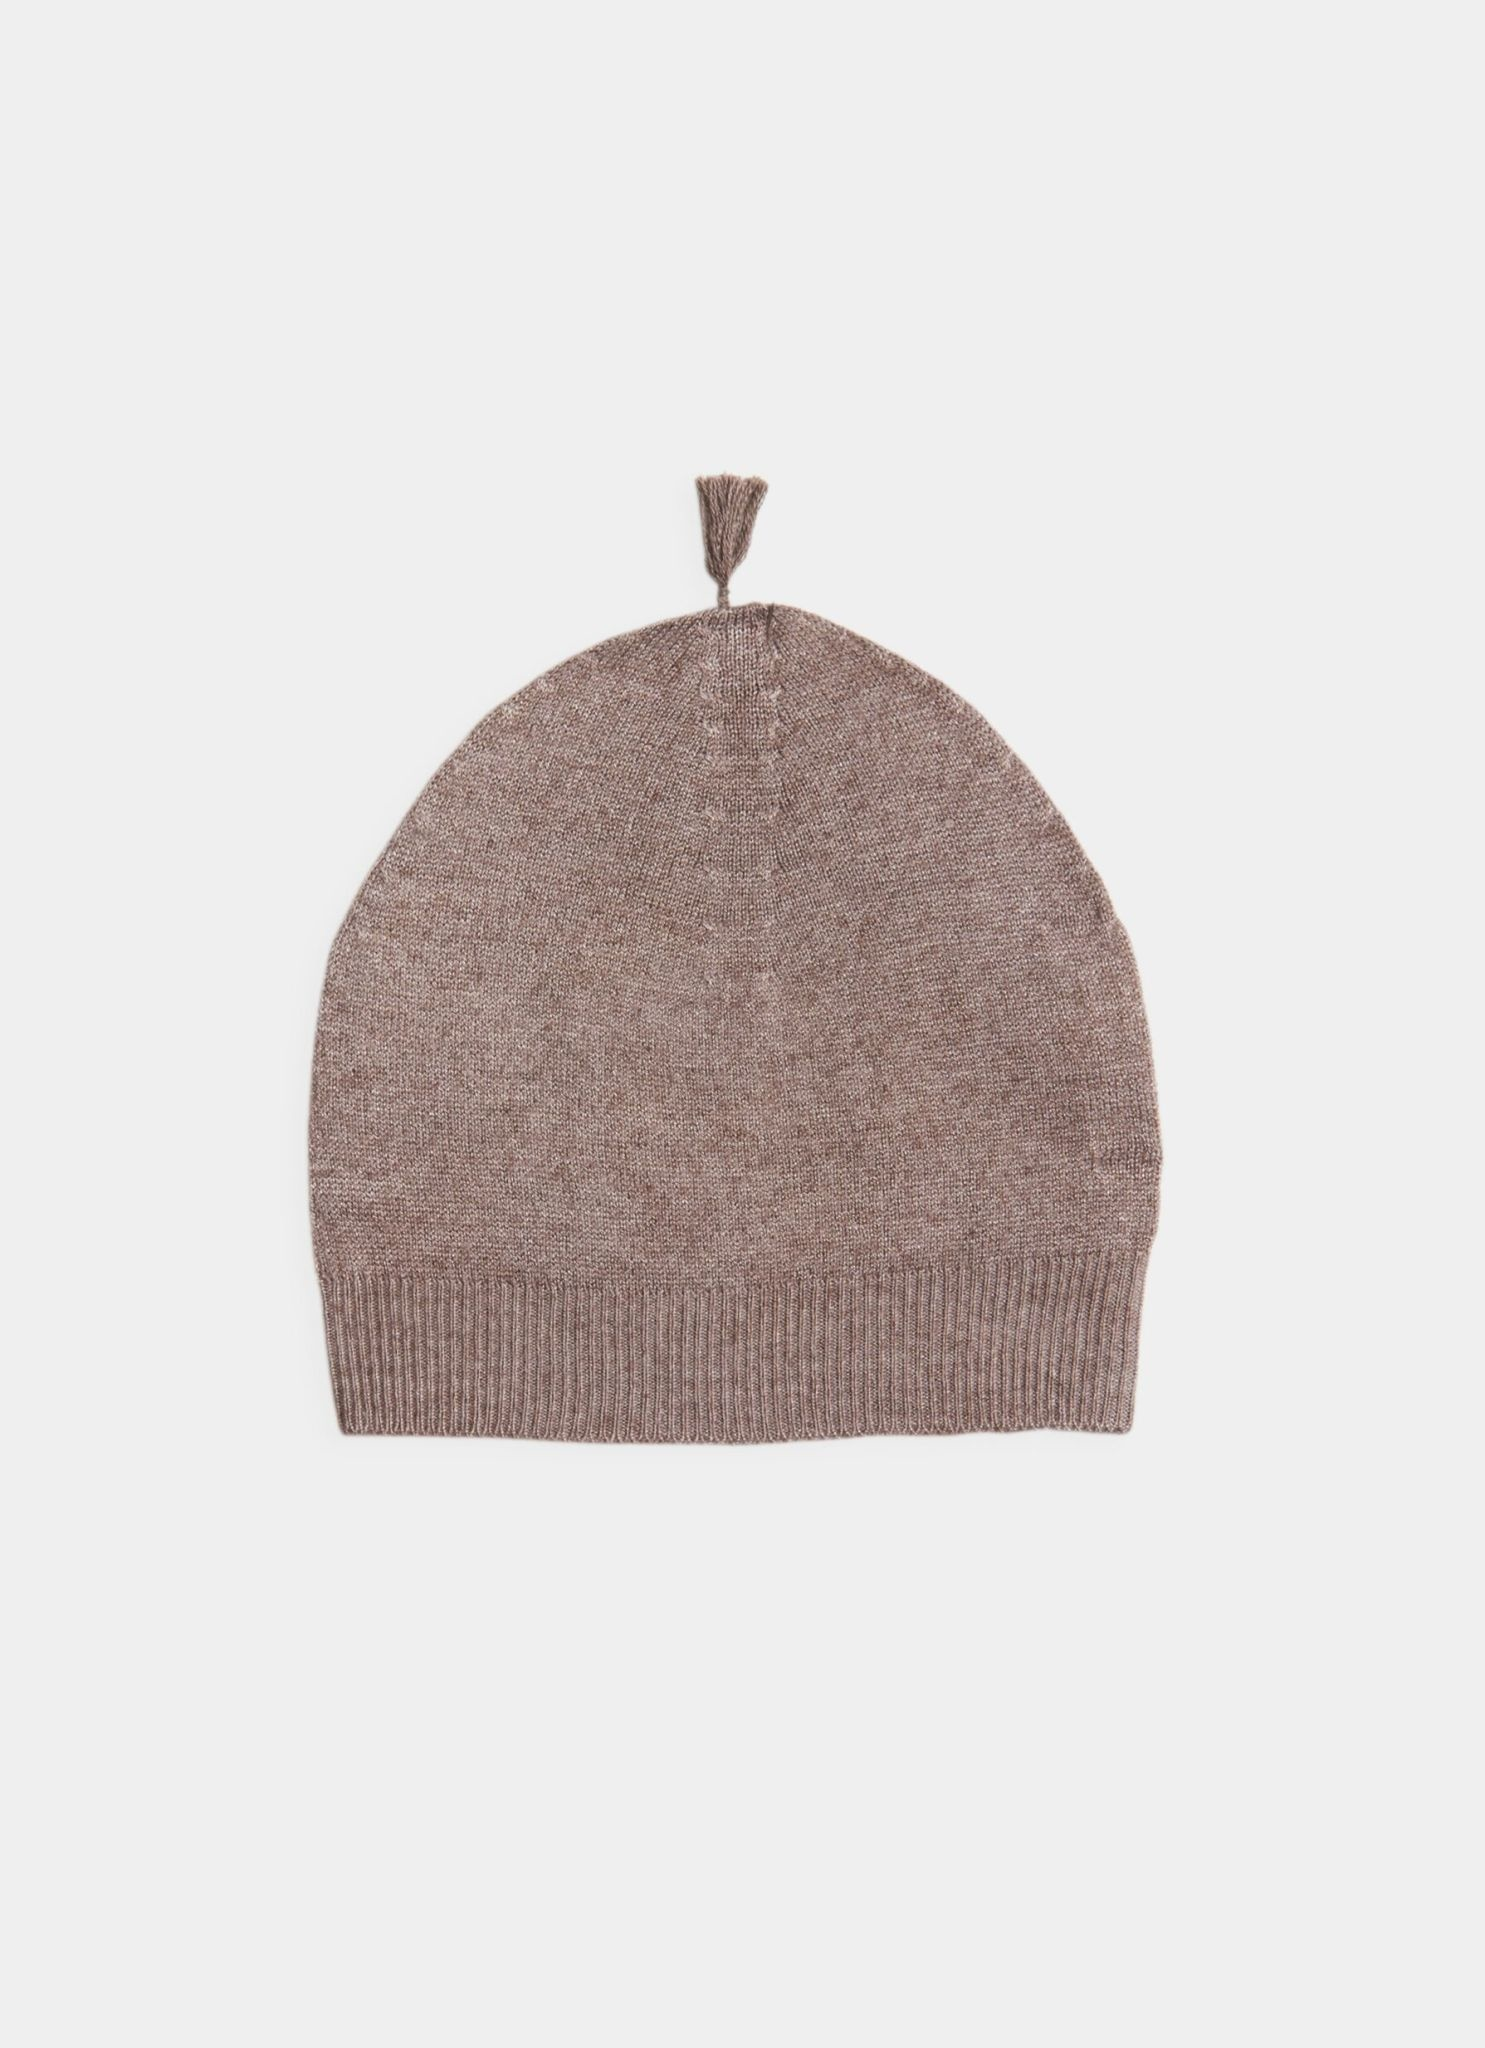 BELLE ENFANT Tassle Hat